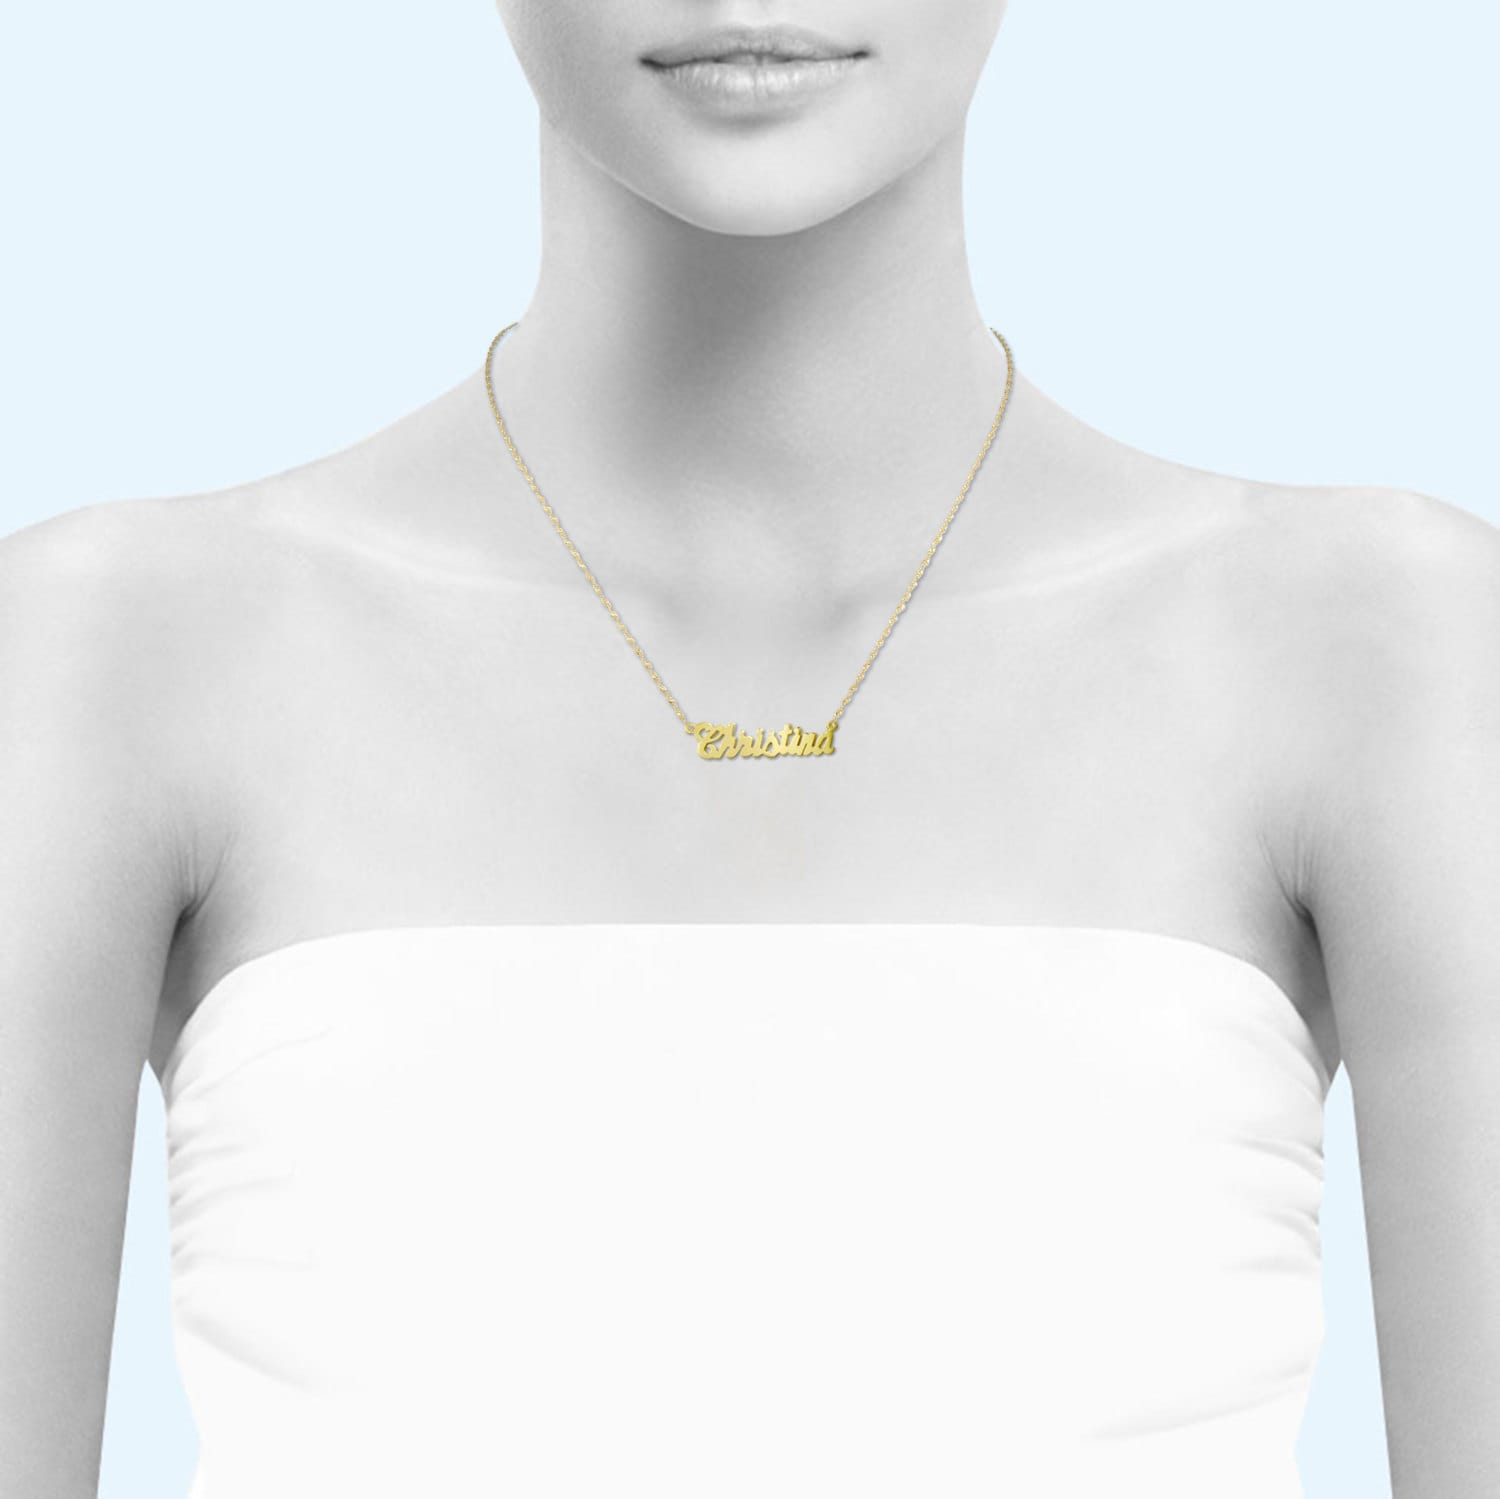 img necklace cursive of trendy statements product name image